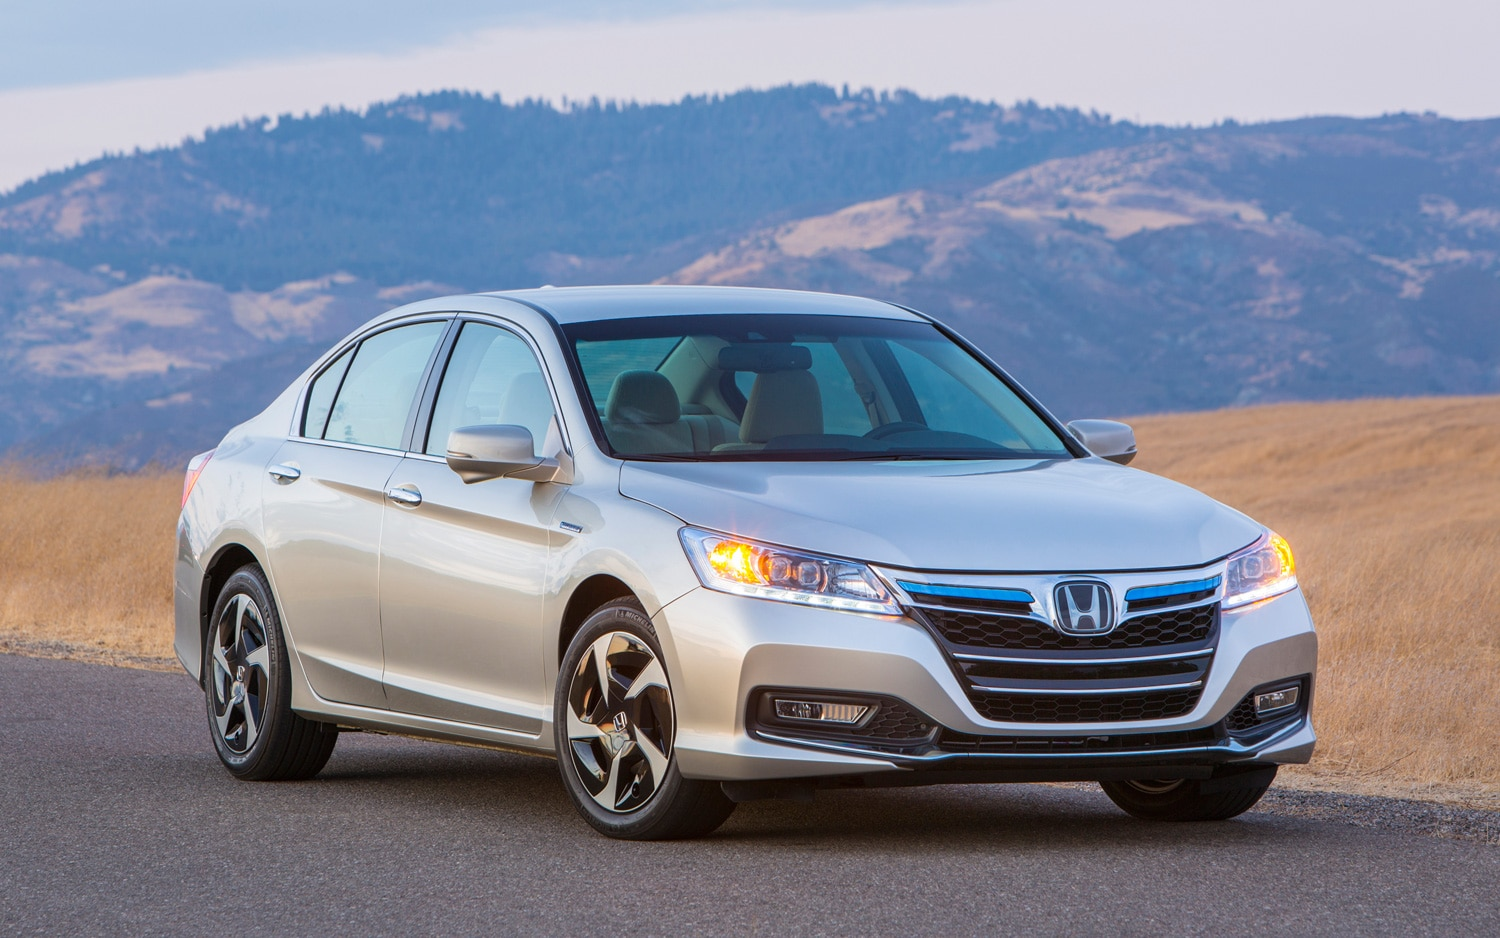 2014 Honda Accord PHEV Right Front 21